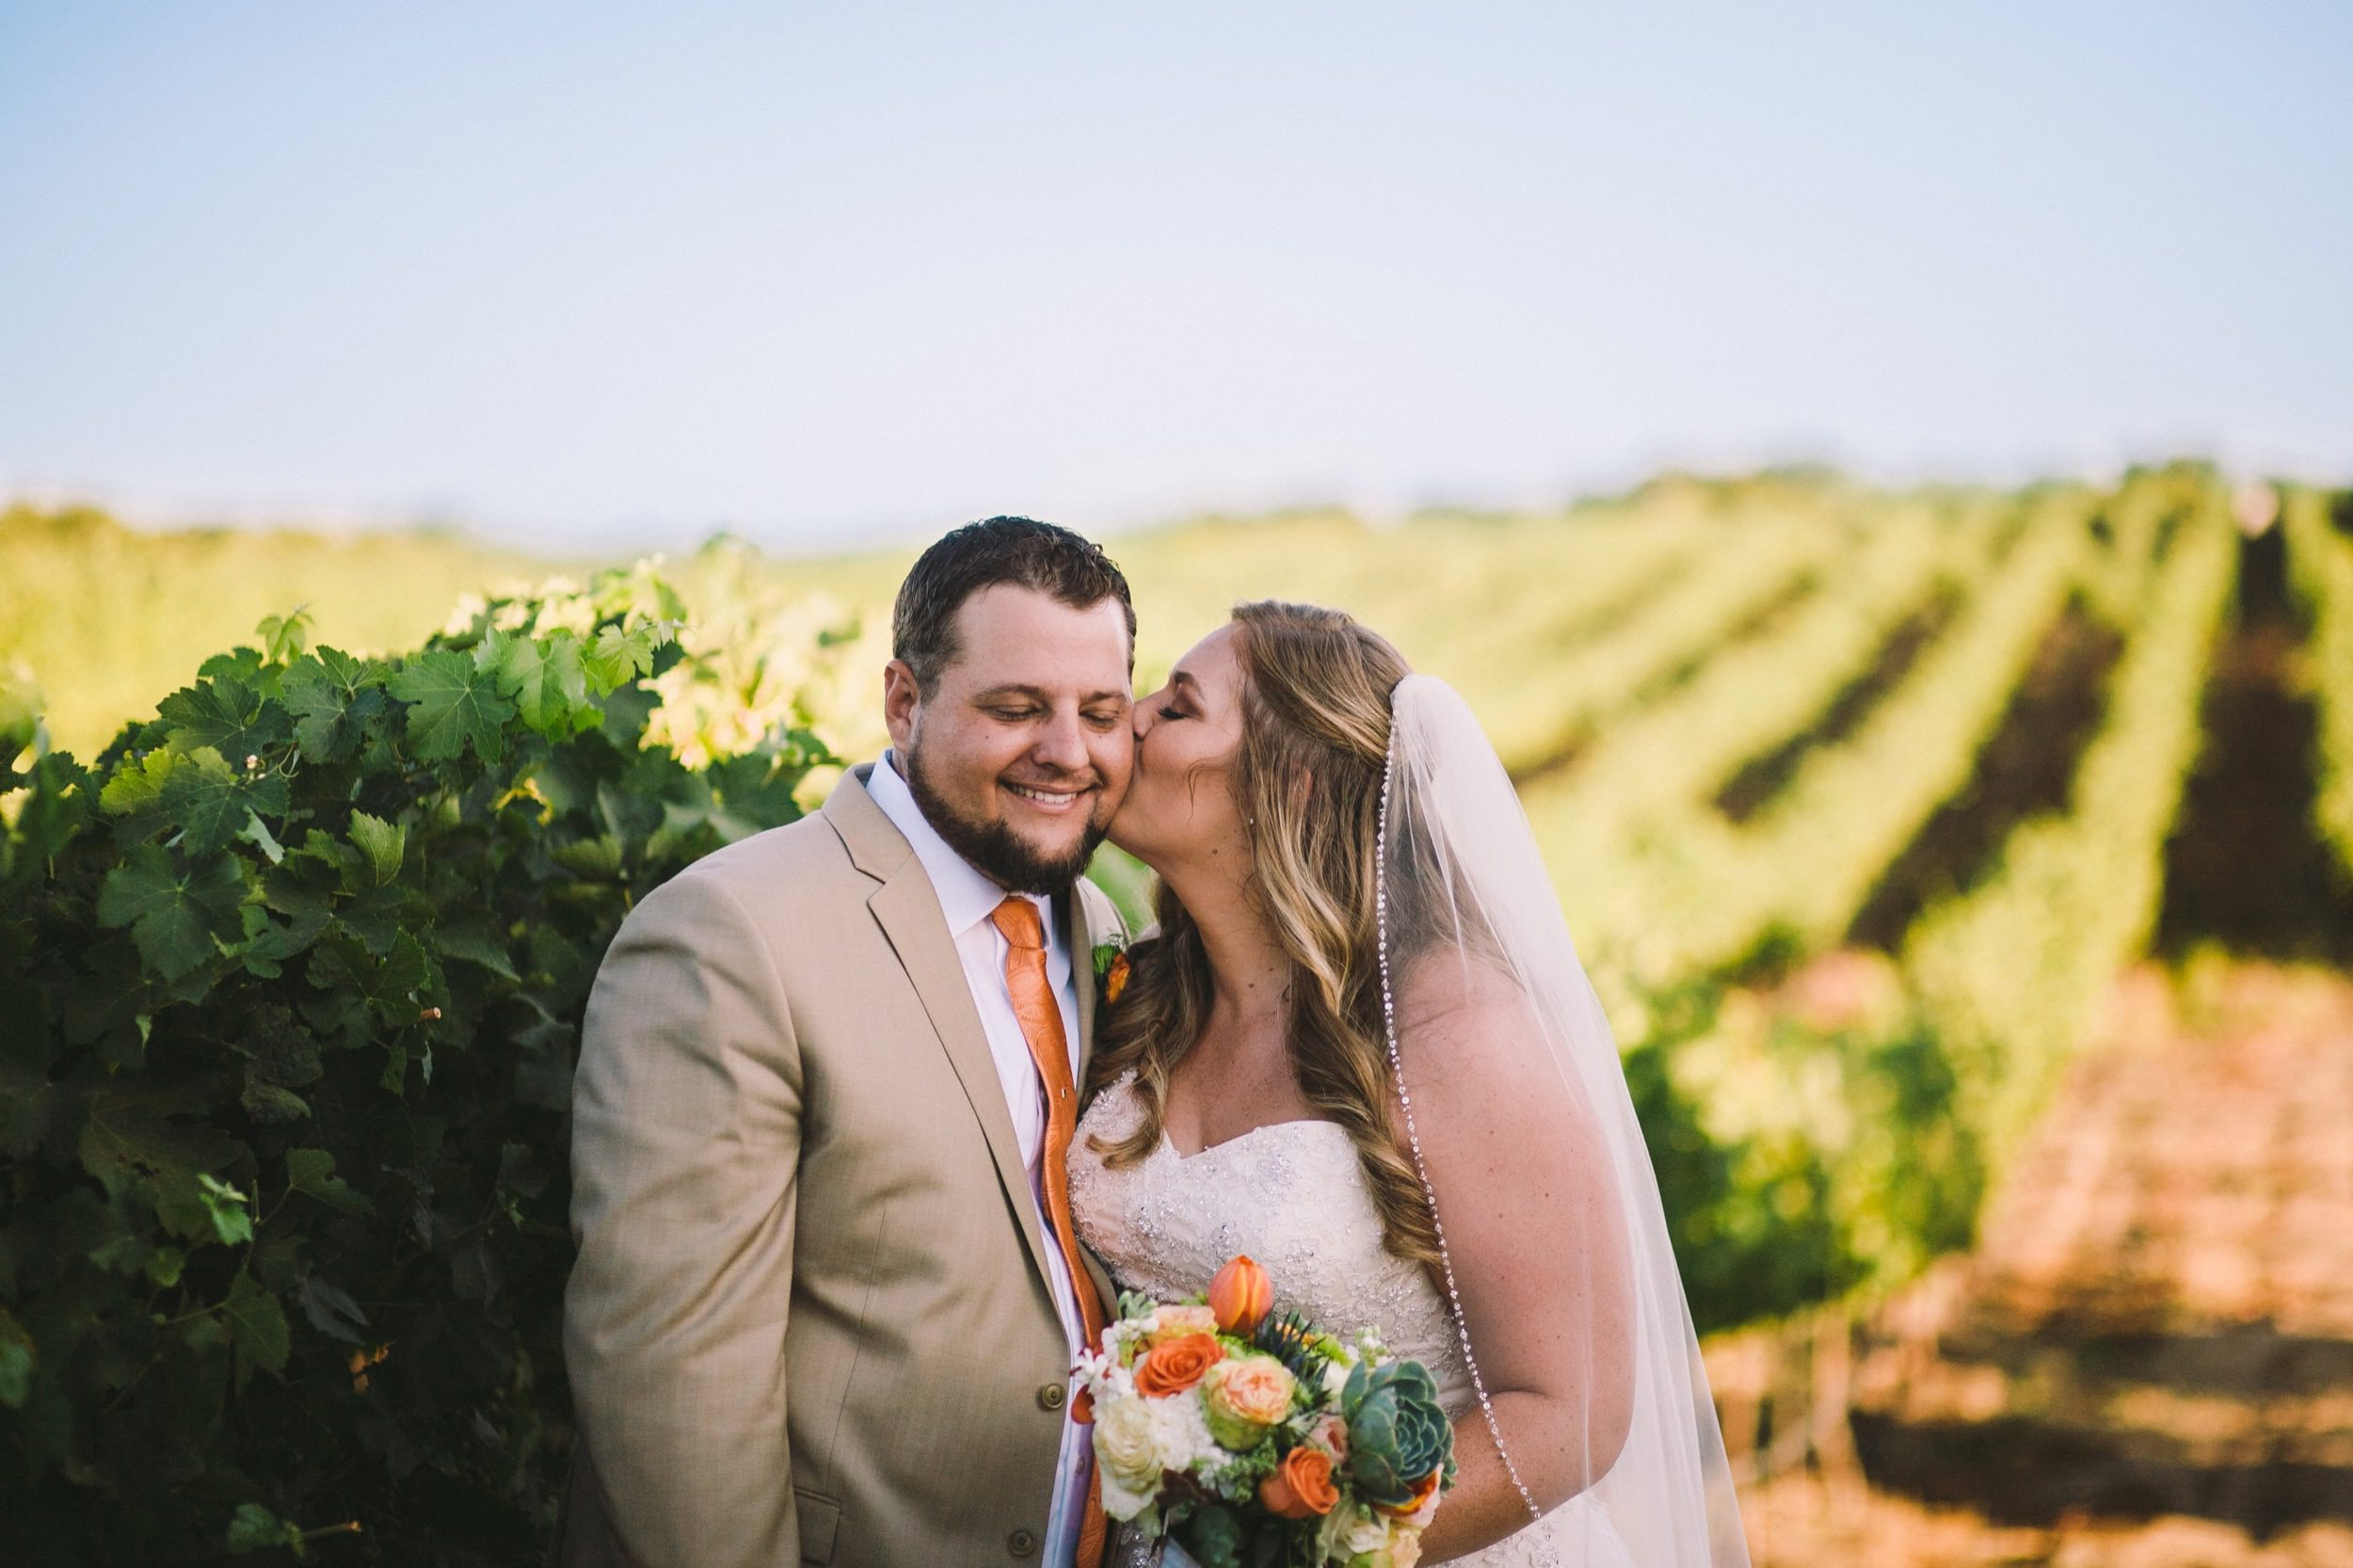 Toca Madera Winery Vineyard Wedding Portraits